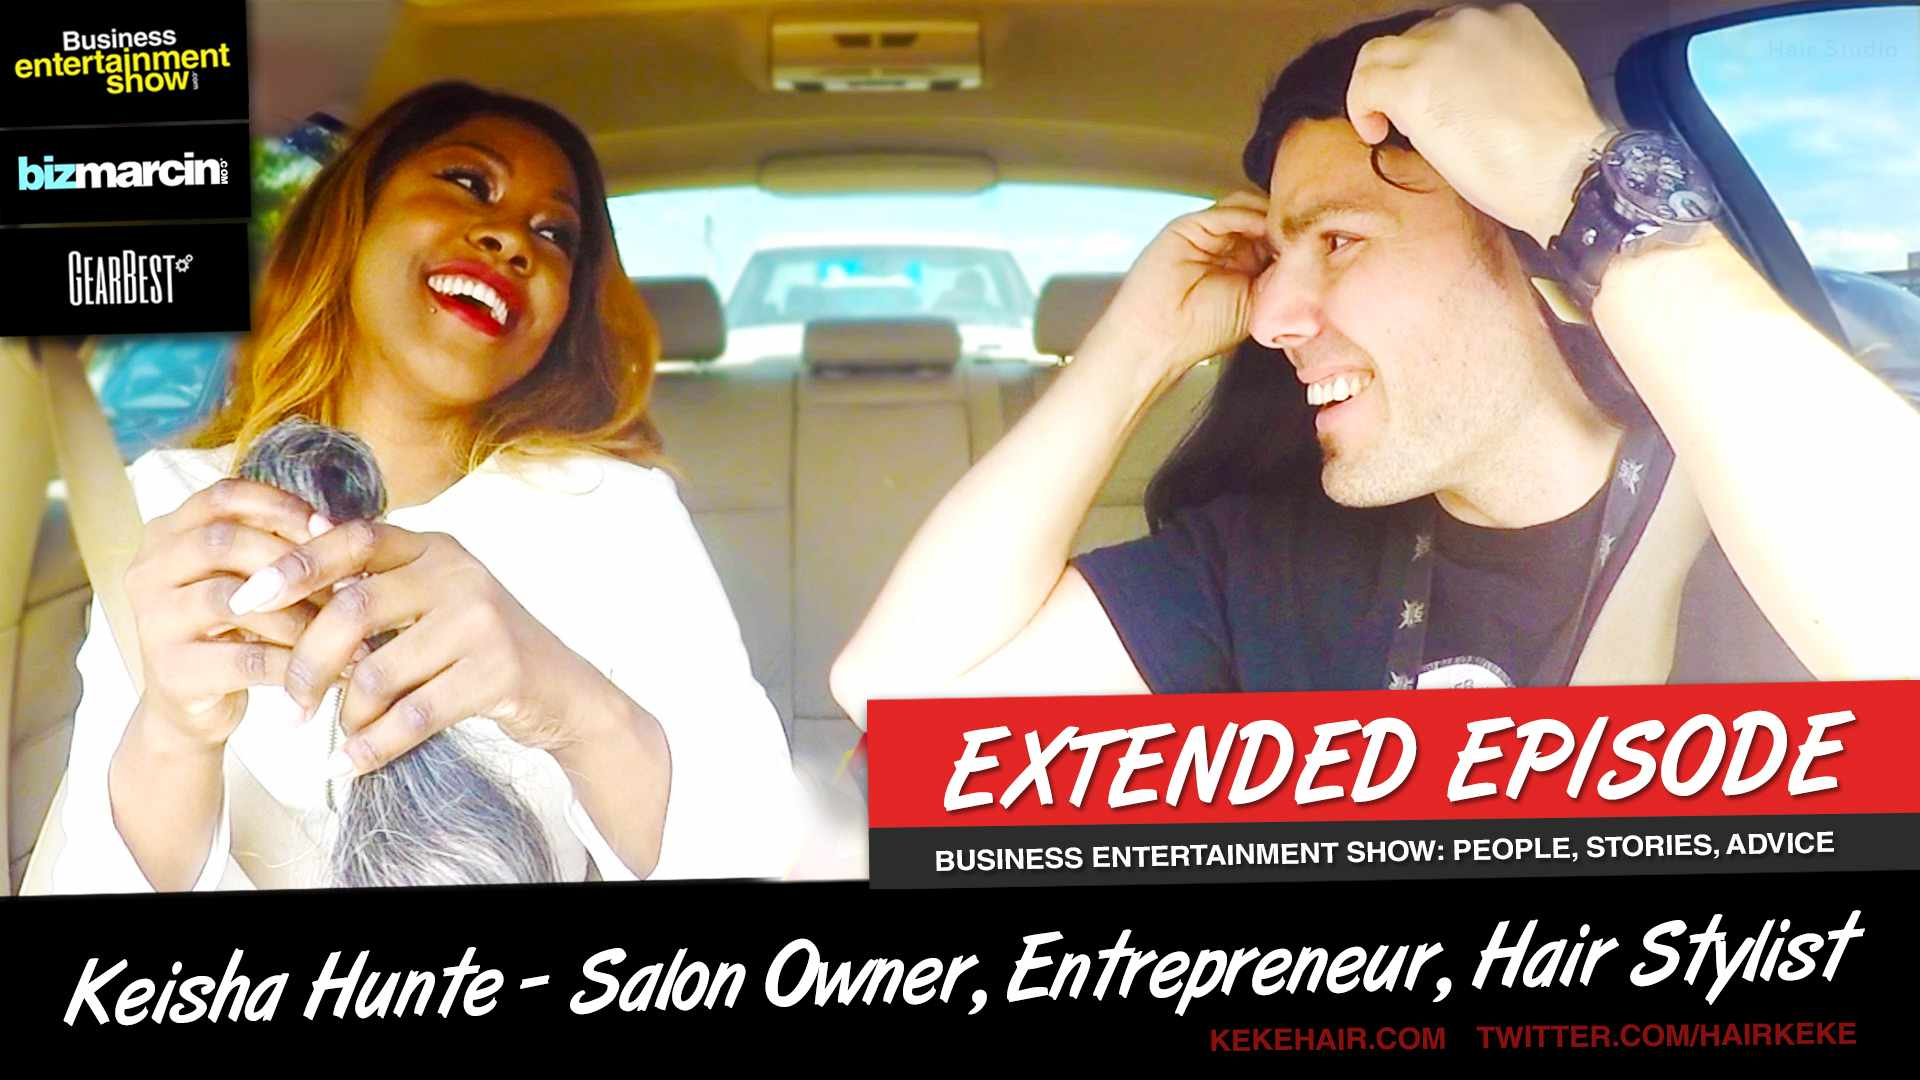 SHE GAVE ME ME A WIG! (Keisha Hunte - KekeHair.com Owner & Hair Stylist on The UBER Experiment)